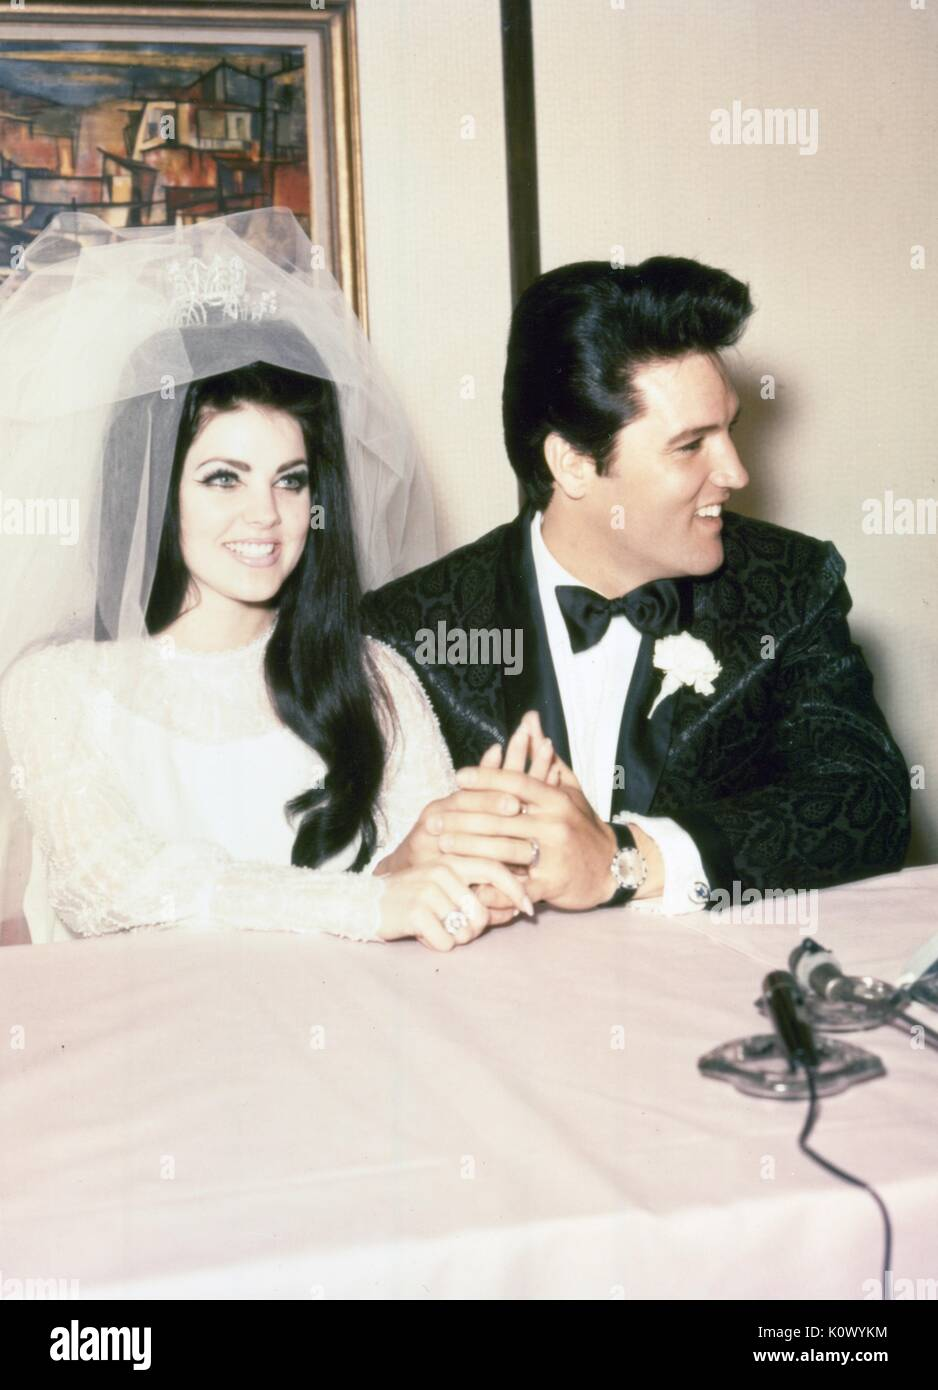 Elvis Presley and Priscilla Presley wedding photo, wearing tuxedo and wedding dress, smiling and holding hands, - Stock Image